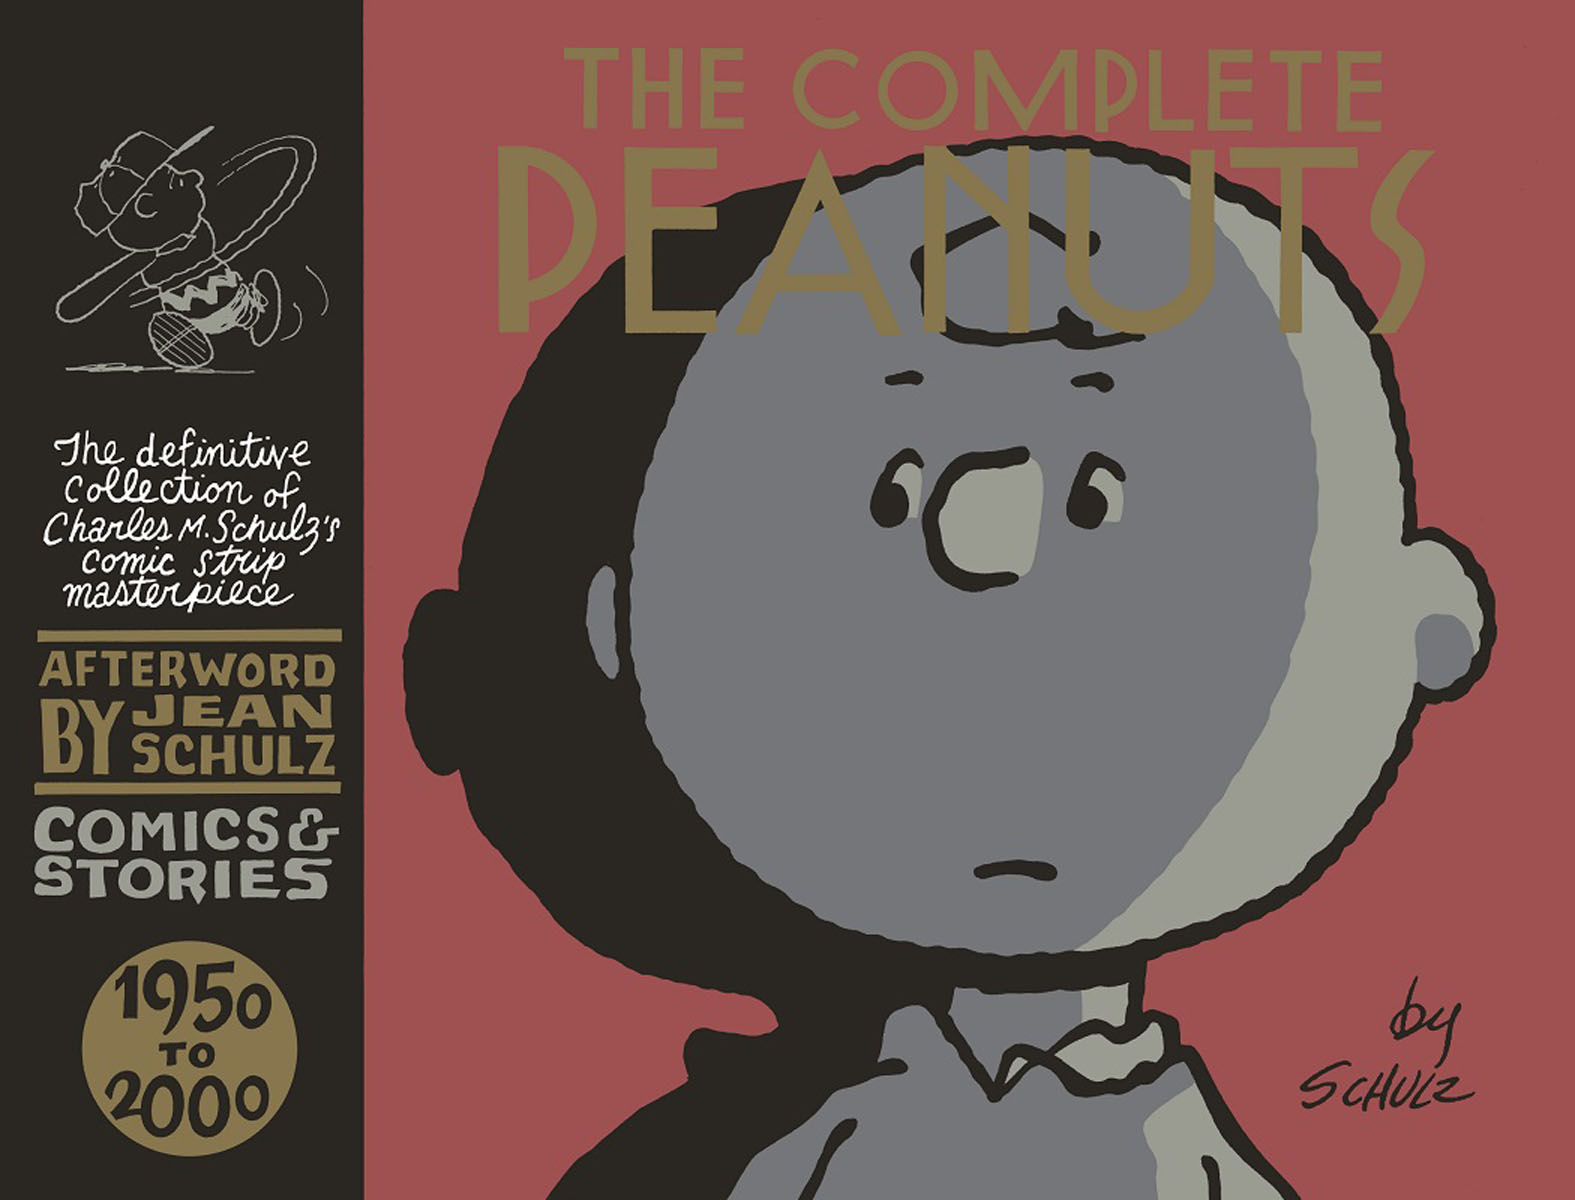 The Complete Peanuts: Comics & Stories Vol. 26 the complete crumb comics vol 8